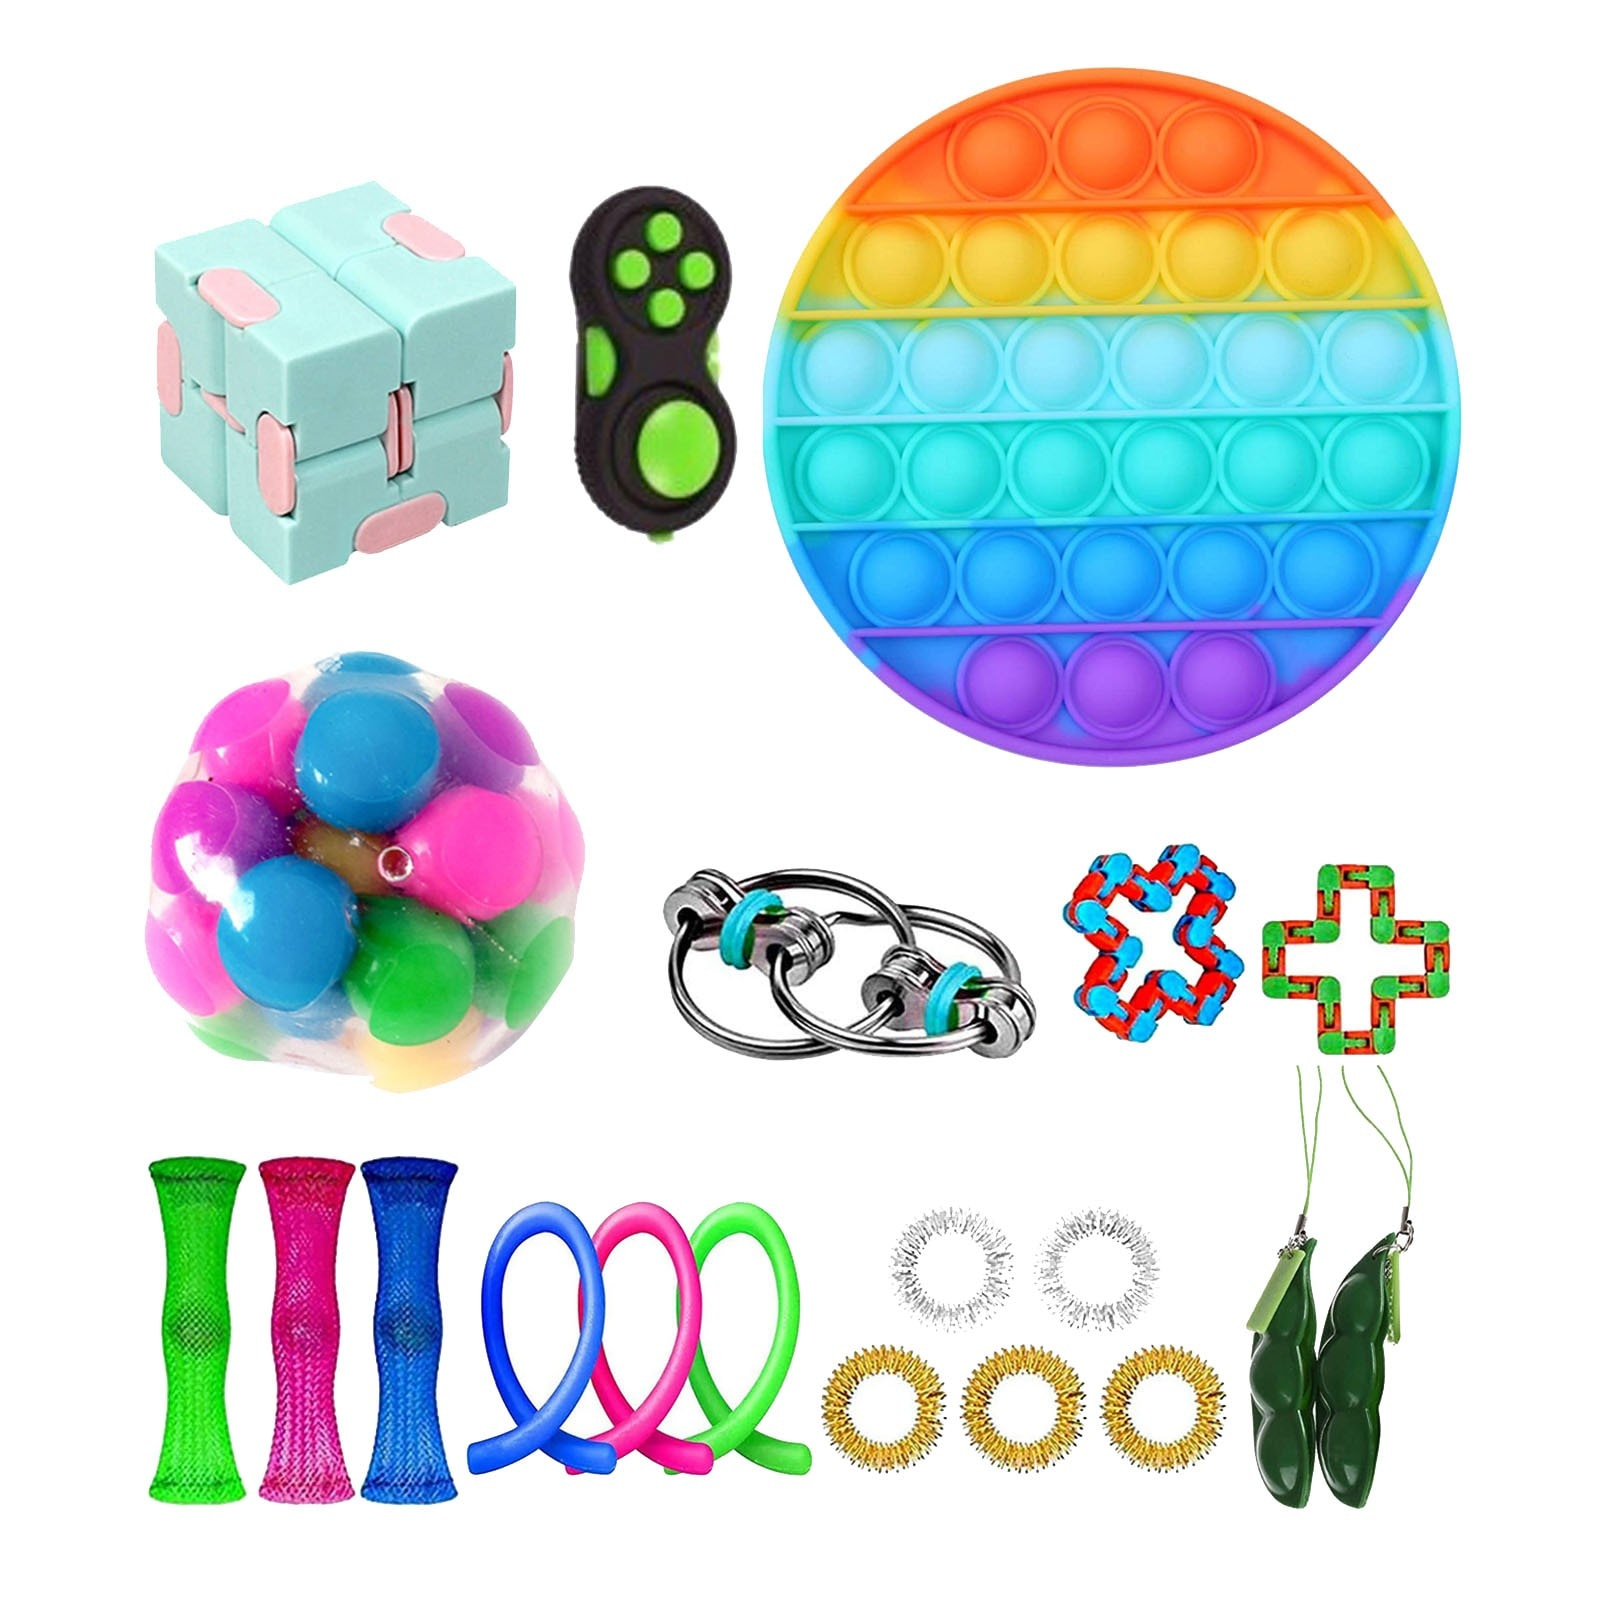 TOP Fidget Toys Pack Anti Stress Toy Set Stress Relief Gift for Adults Girl Children Sensory Antistress Relief Figet Toys Box enlarge